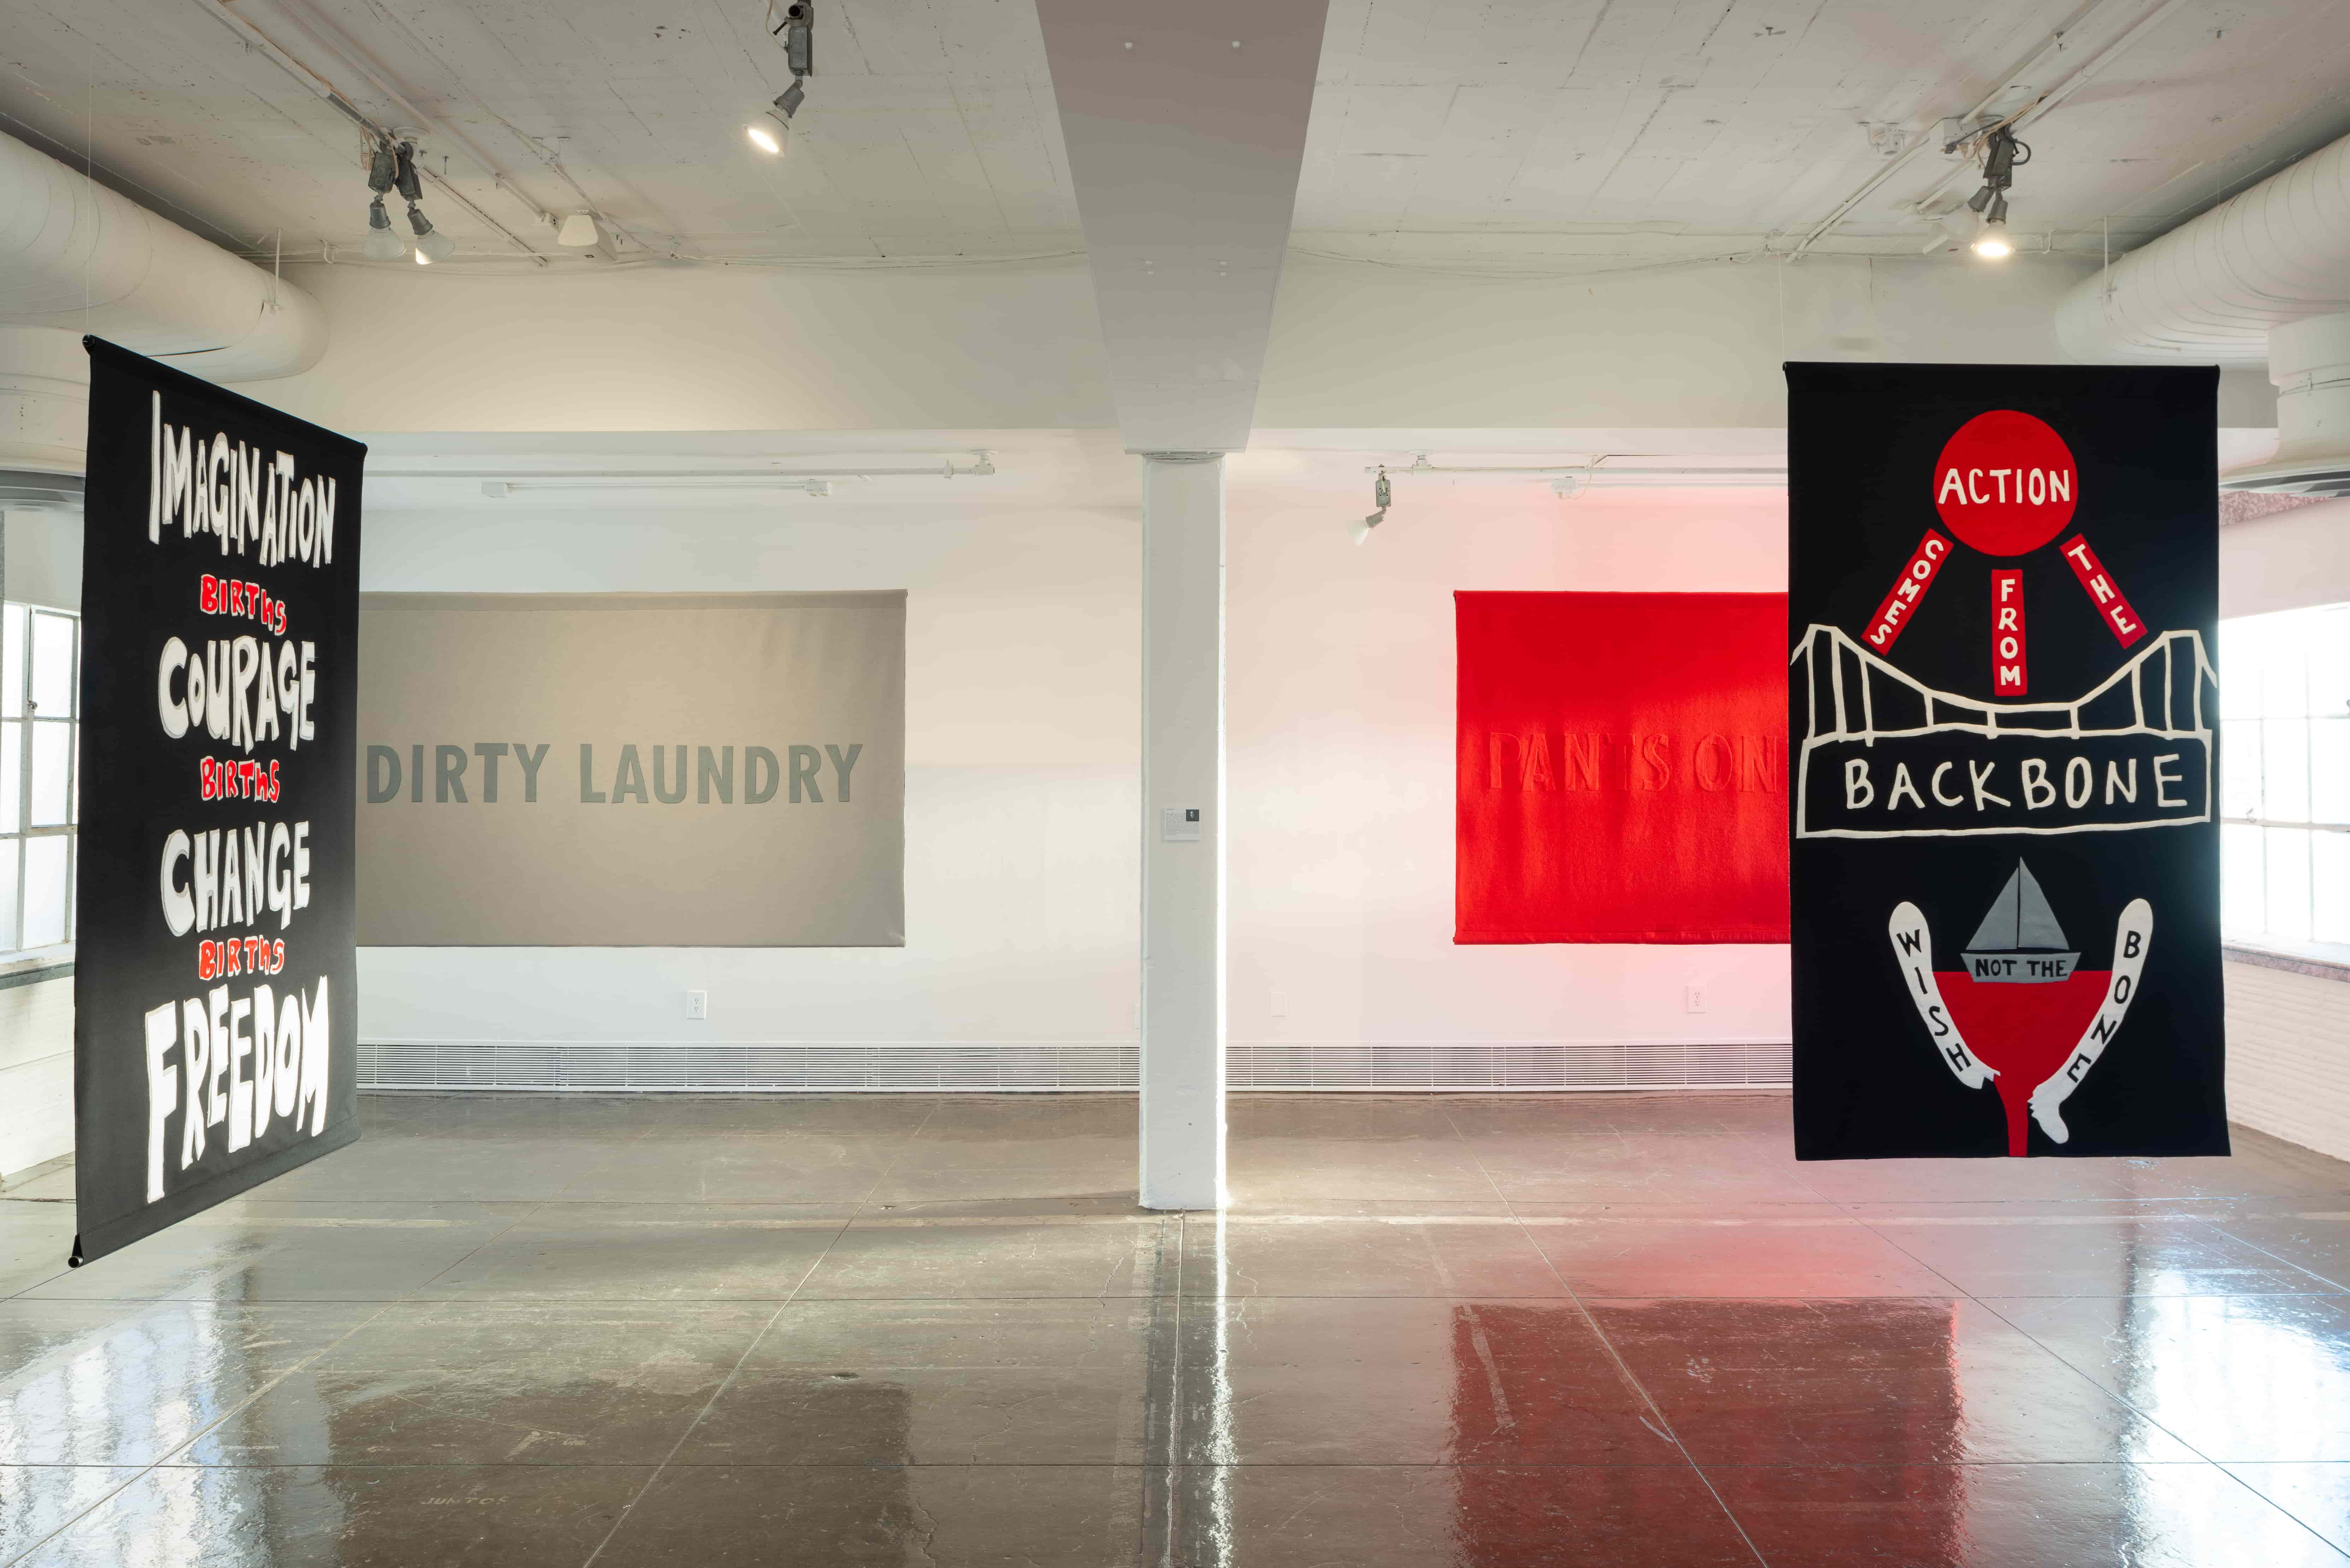 Wangechi Mutu, Imagination births courage births change births freedom (2018); Jenny Holzer, Dirty laundry/follow the money (2018); Jenny Holzer, Pants on fire (2018); Anne Carson/Amy Khoshbin, Action comes from the backbone not the wishbone (2018). Image courtesy of Artpace